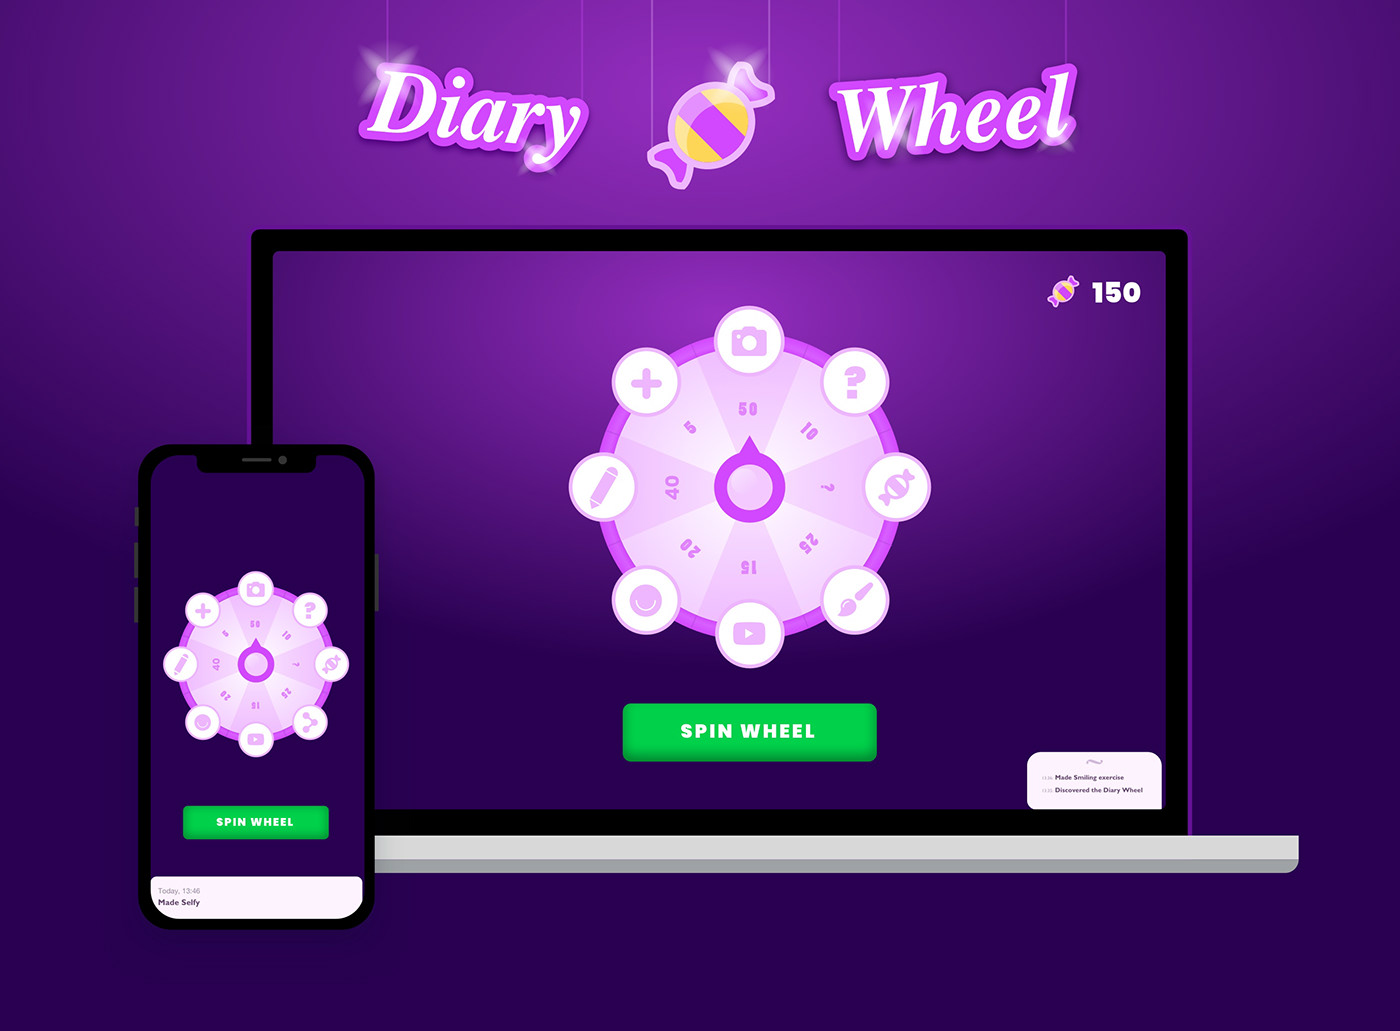 wheel roulethe spin Candy design uiux showcase animation  Diary online